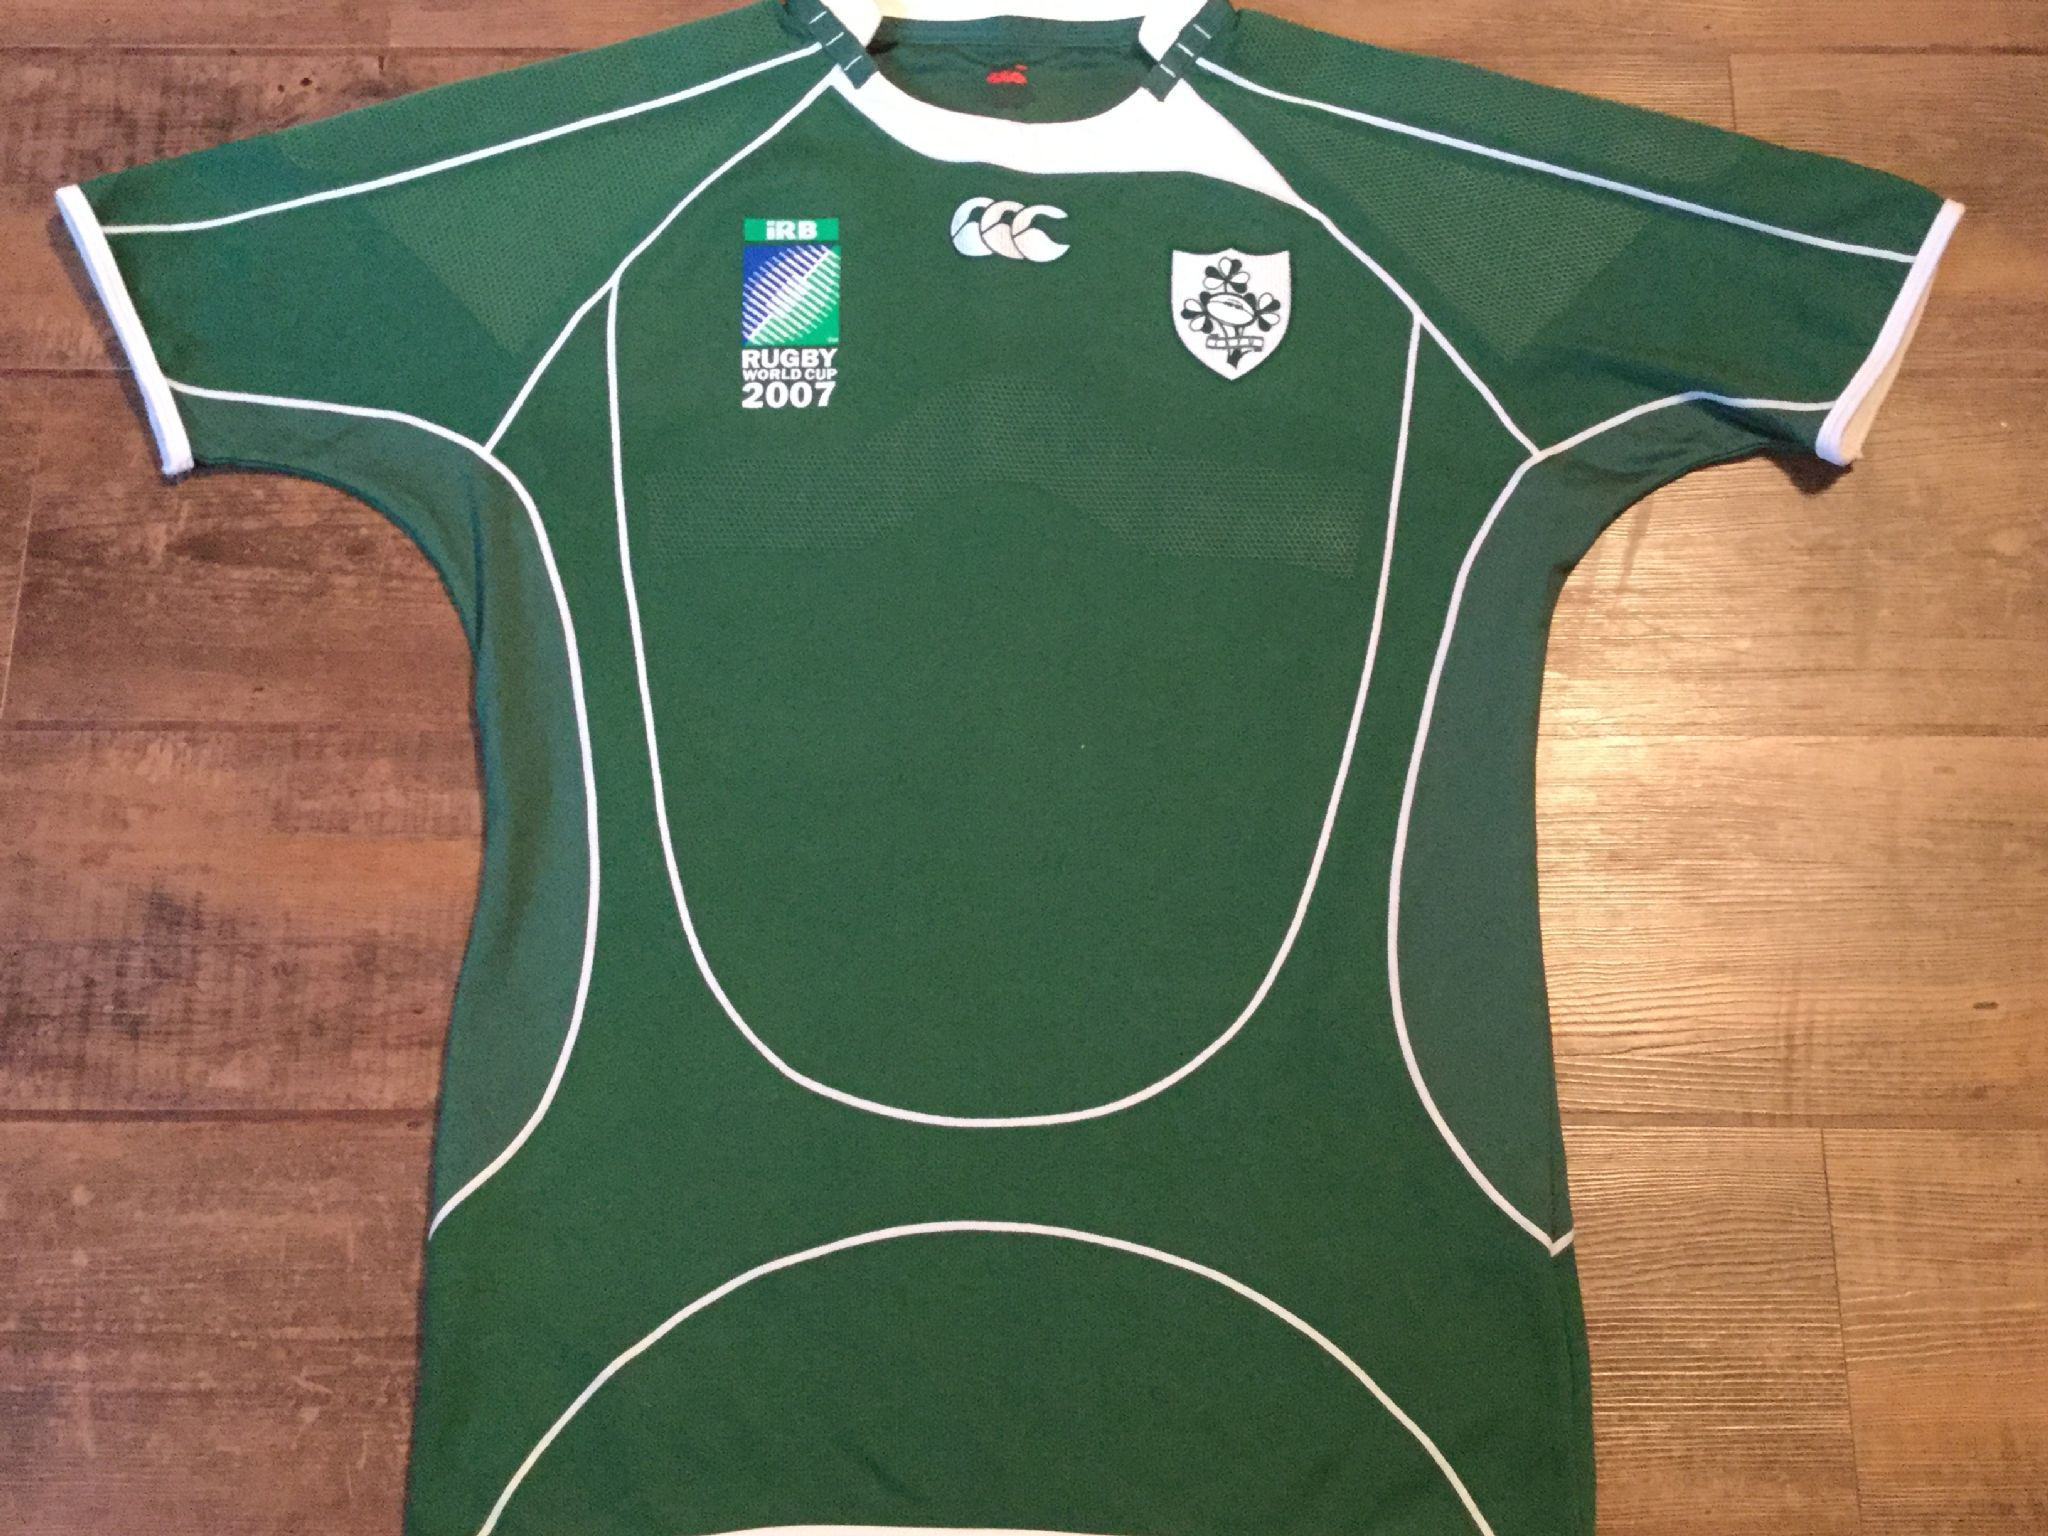 Classic Rugby Shirts 2007 Ireland Old Vintage Jerseys Retro